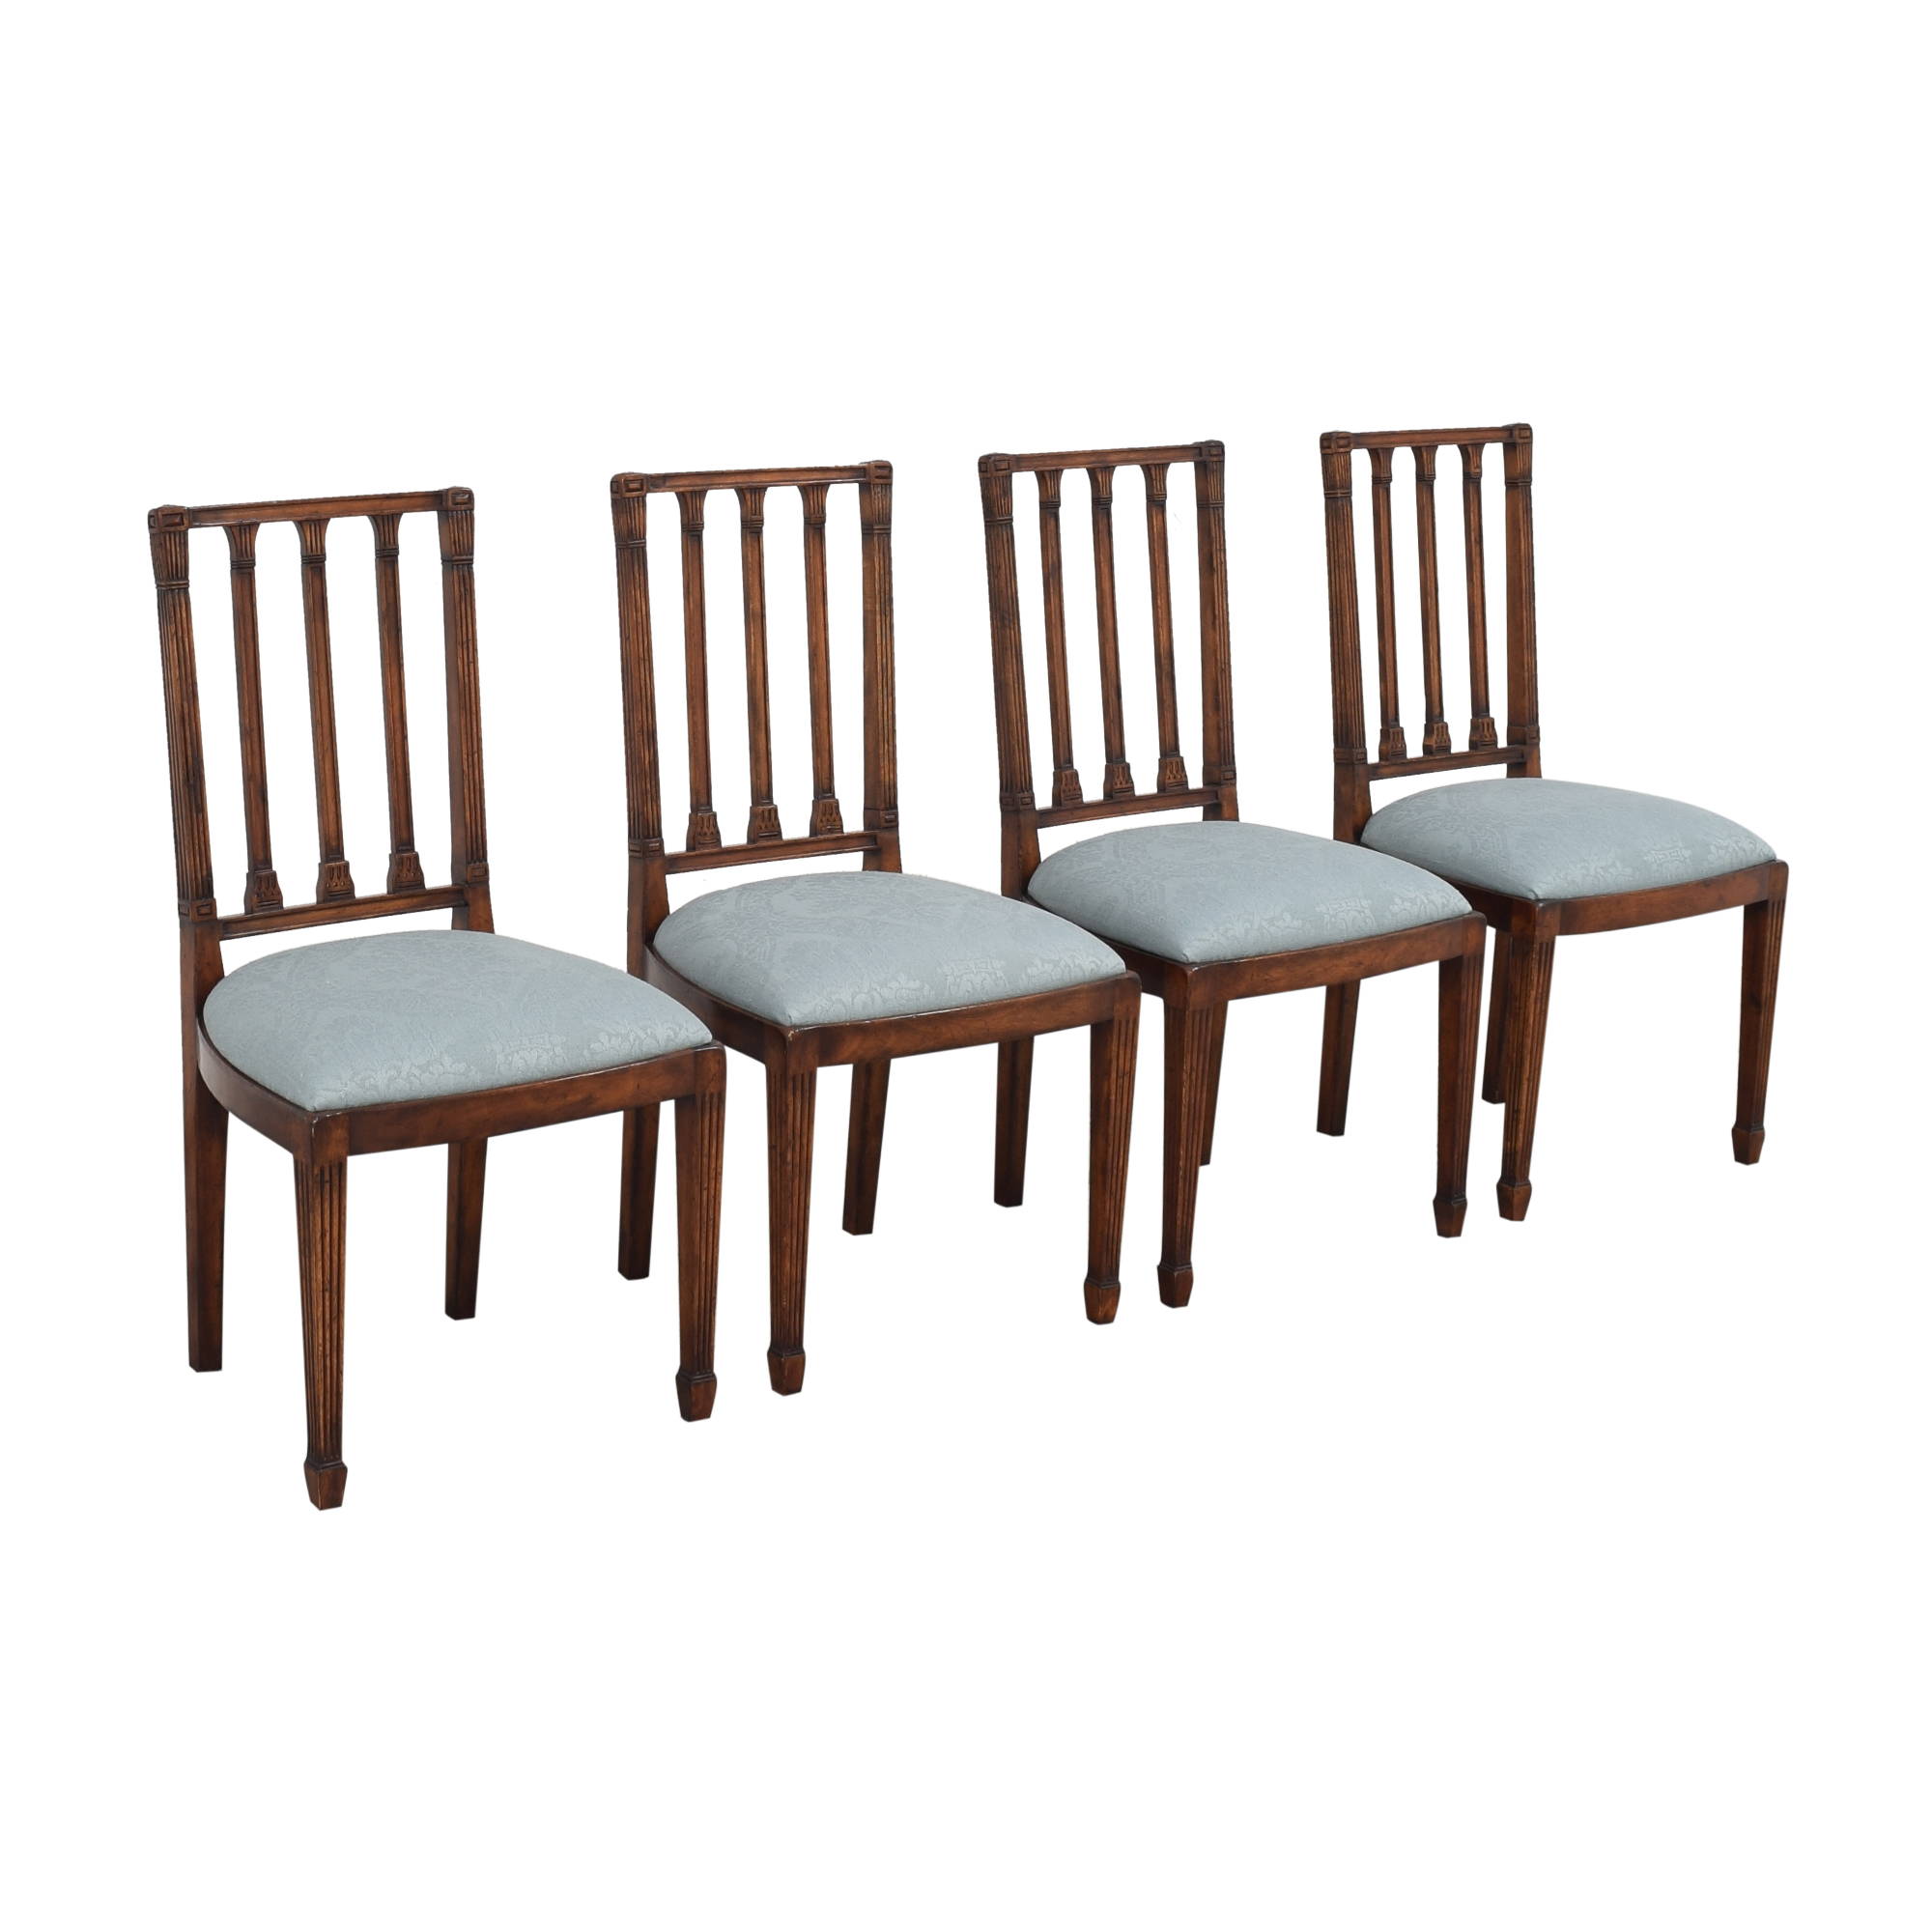 buy English Country Home English Country Home Upholstered Dining Chairs online